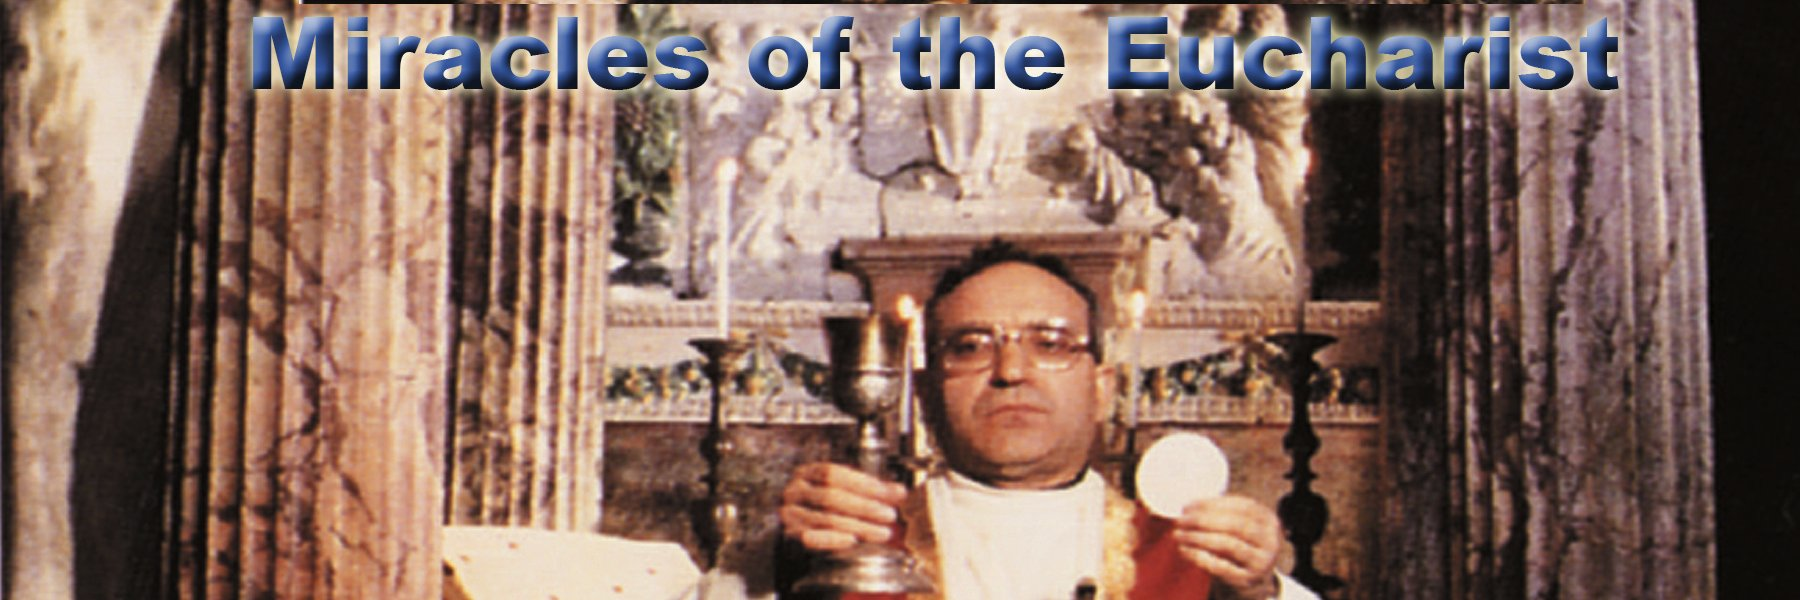 Our most popular video Miracles of the Eucharist